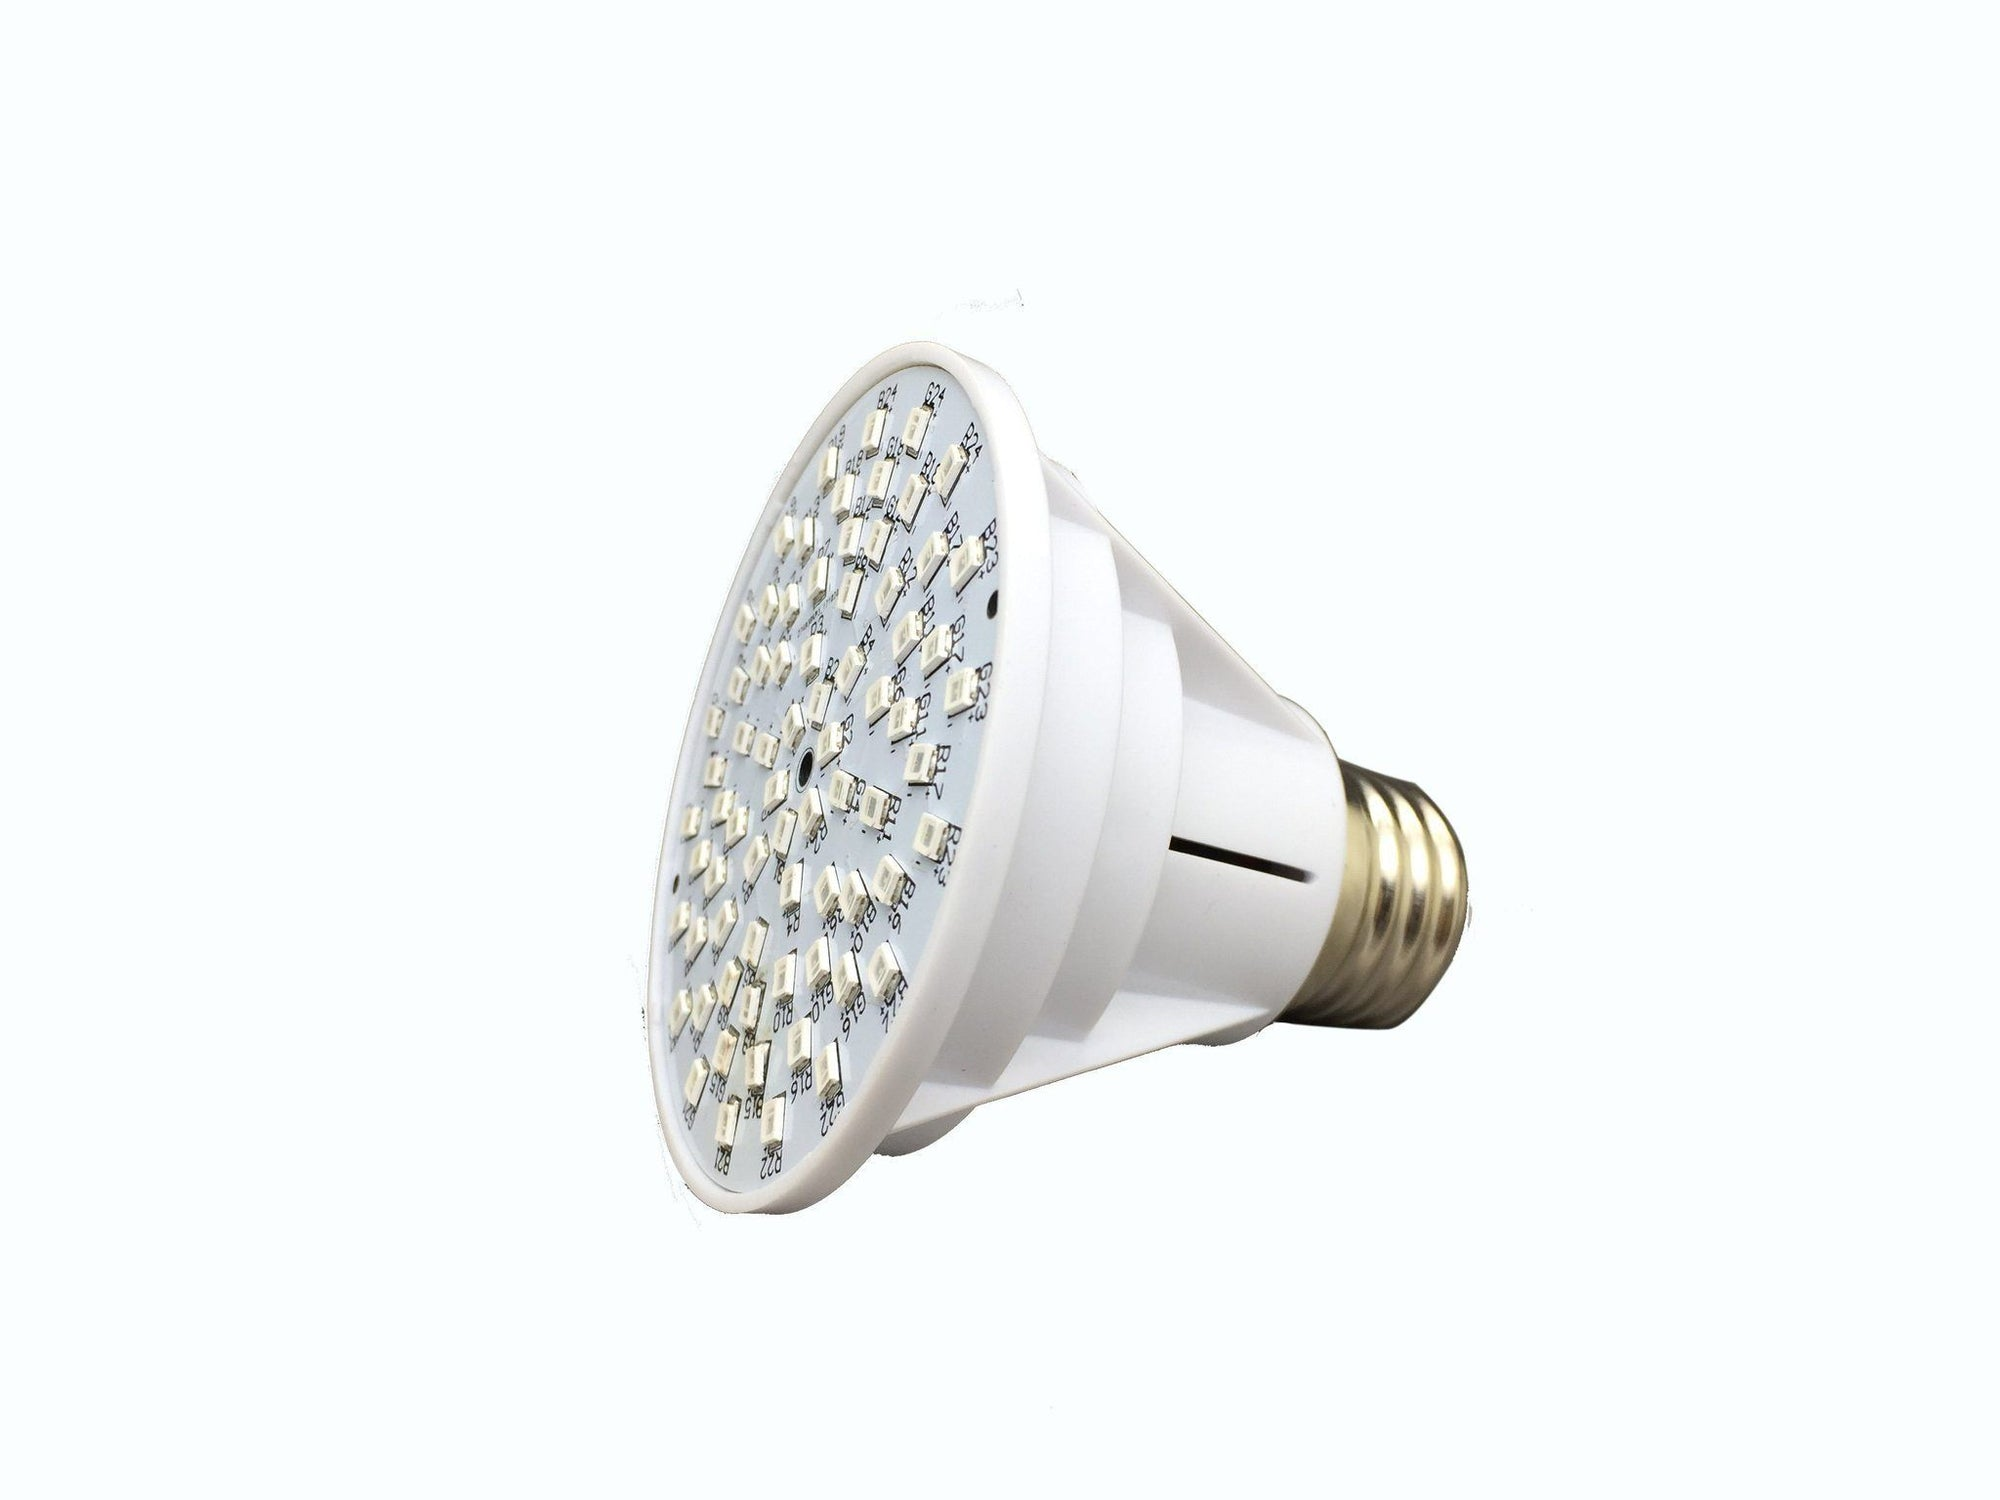 Hayward® Pentair® Spa Color LED Light 120V Edison Base E27 Home & Garden > Lighting > Light Bulbs Refined LED